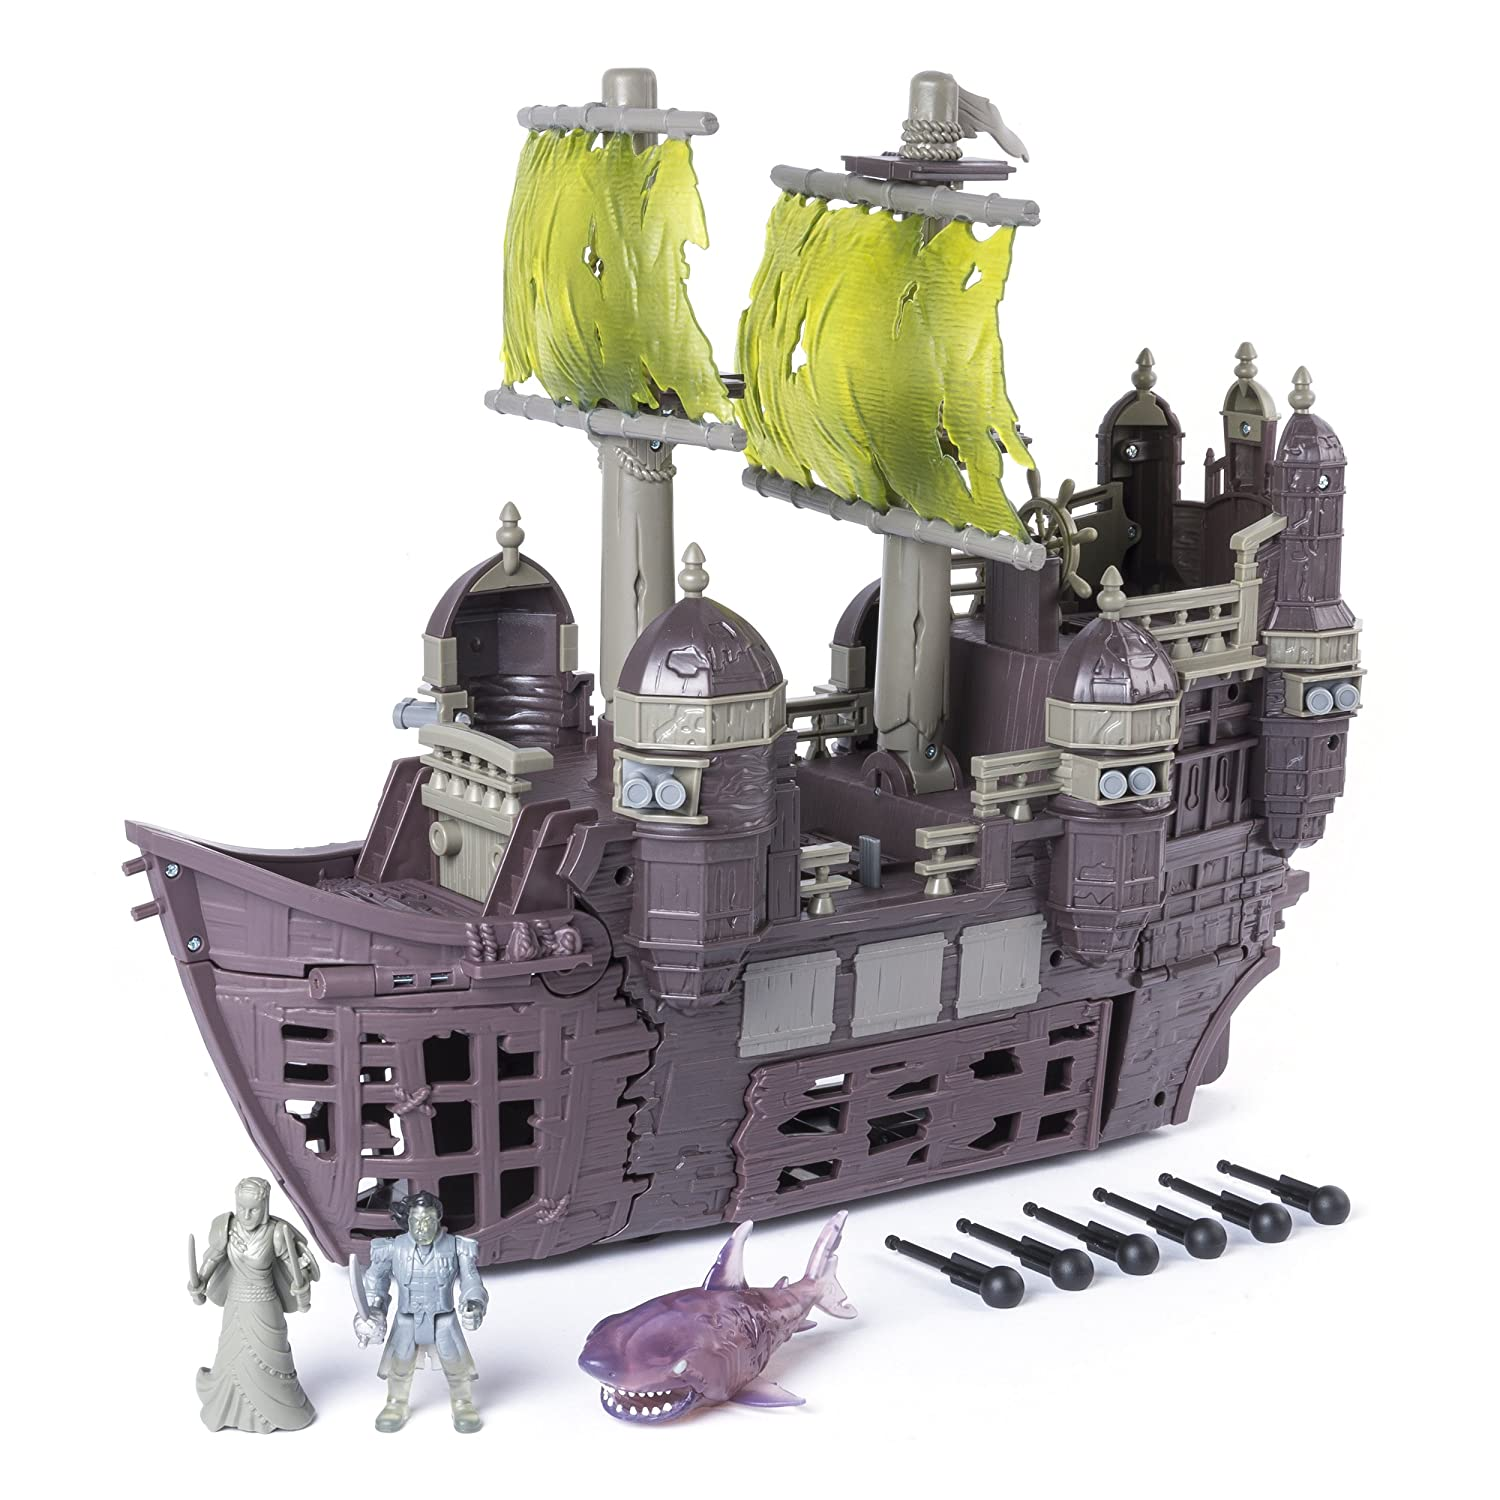 Dead Men Tell No Tales Lego Pirate Ship Silent Mary